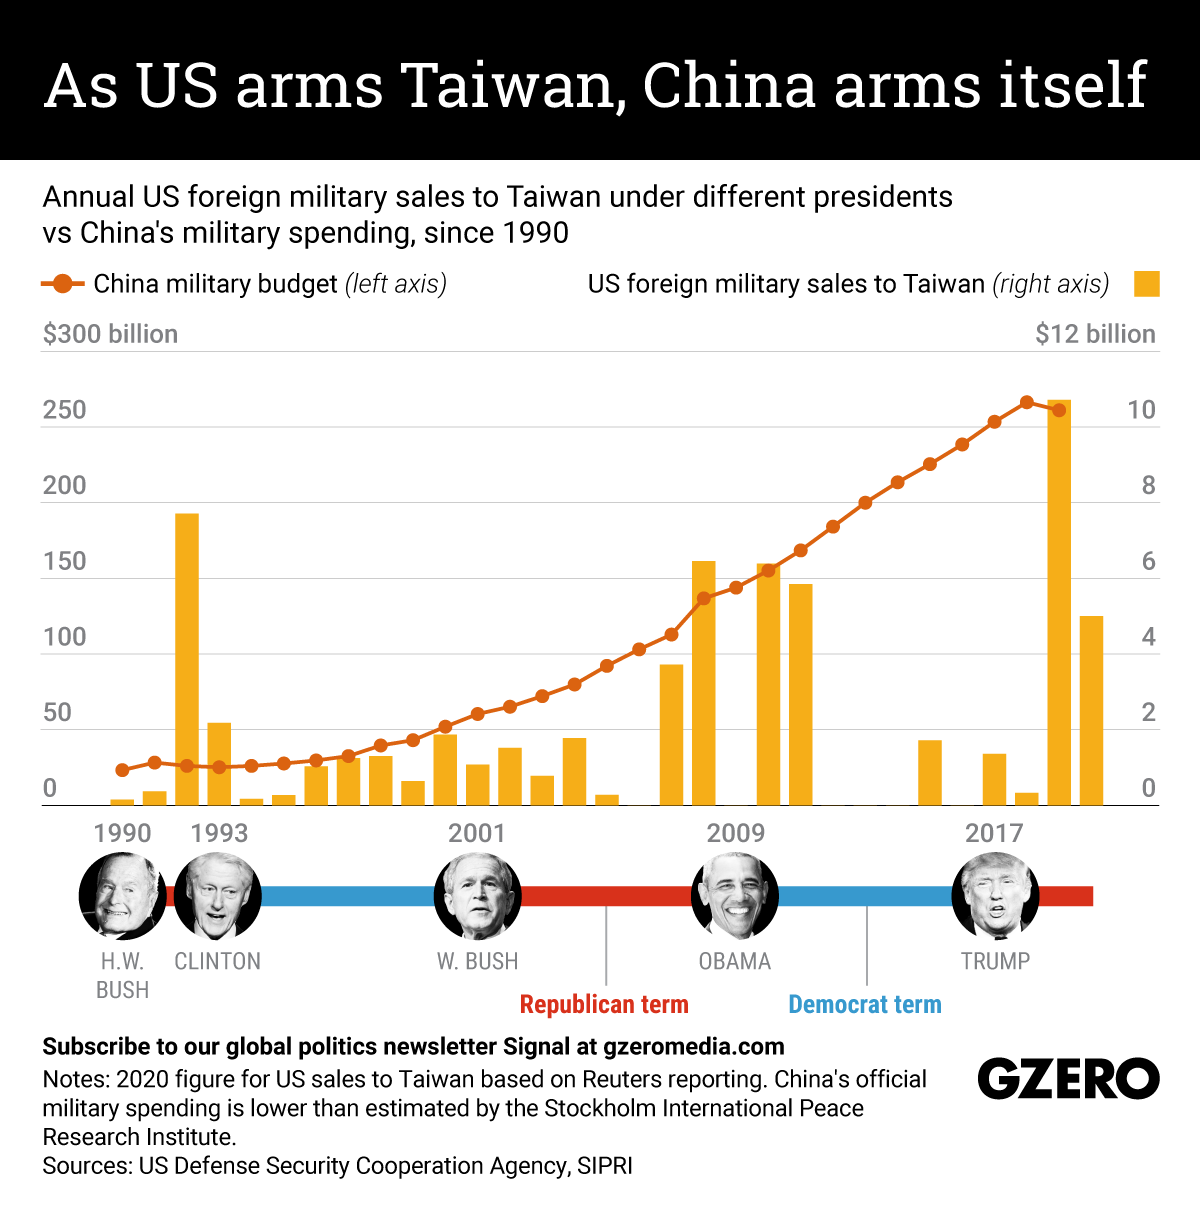 US arms sales have bolstered Taiwan's defense deterrent while China's military budget has skyrocketed. We take a look at US military sales to Taiwan compared with China's own defense spending over the last 30 years.